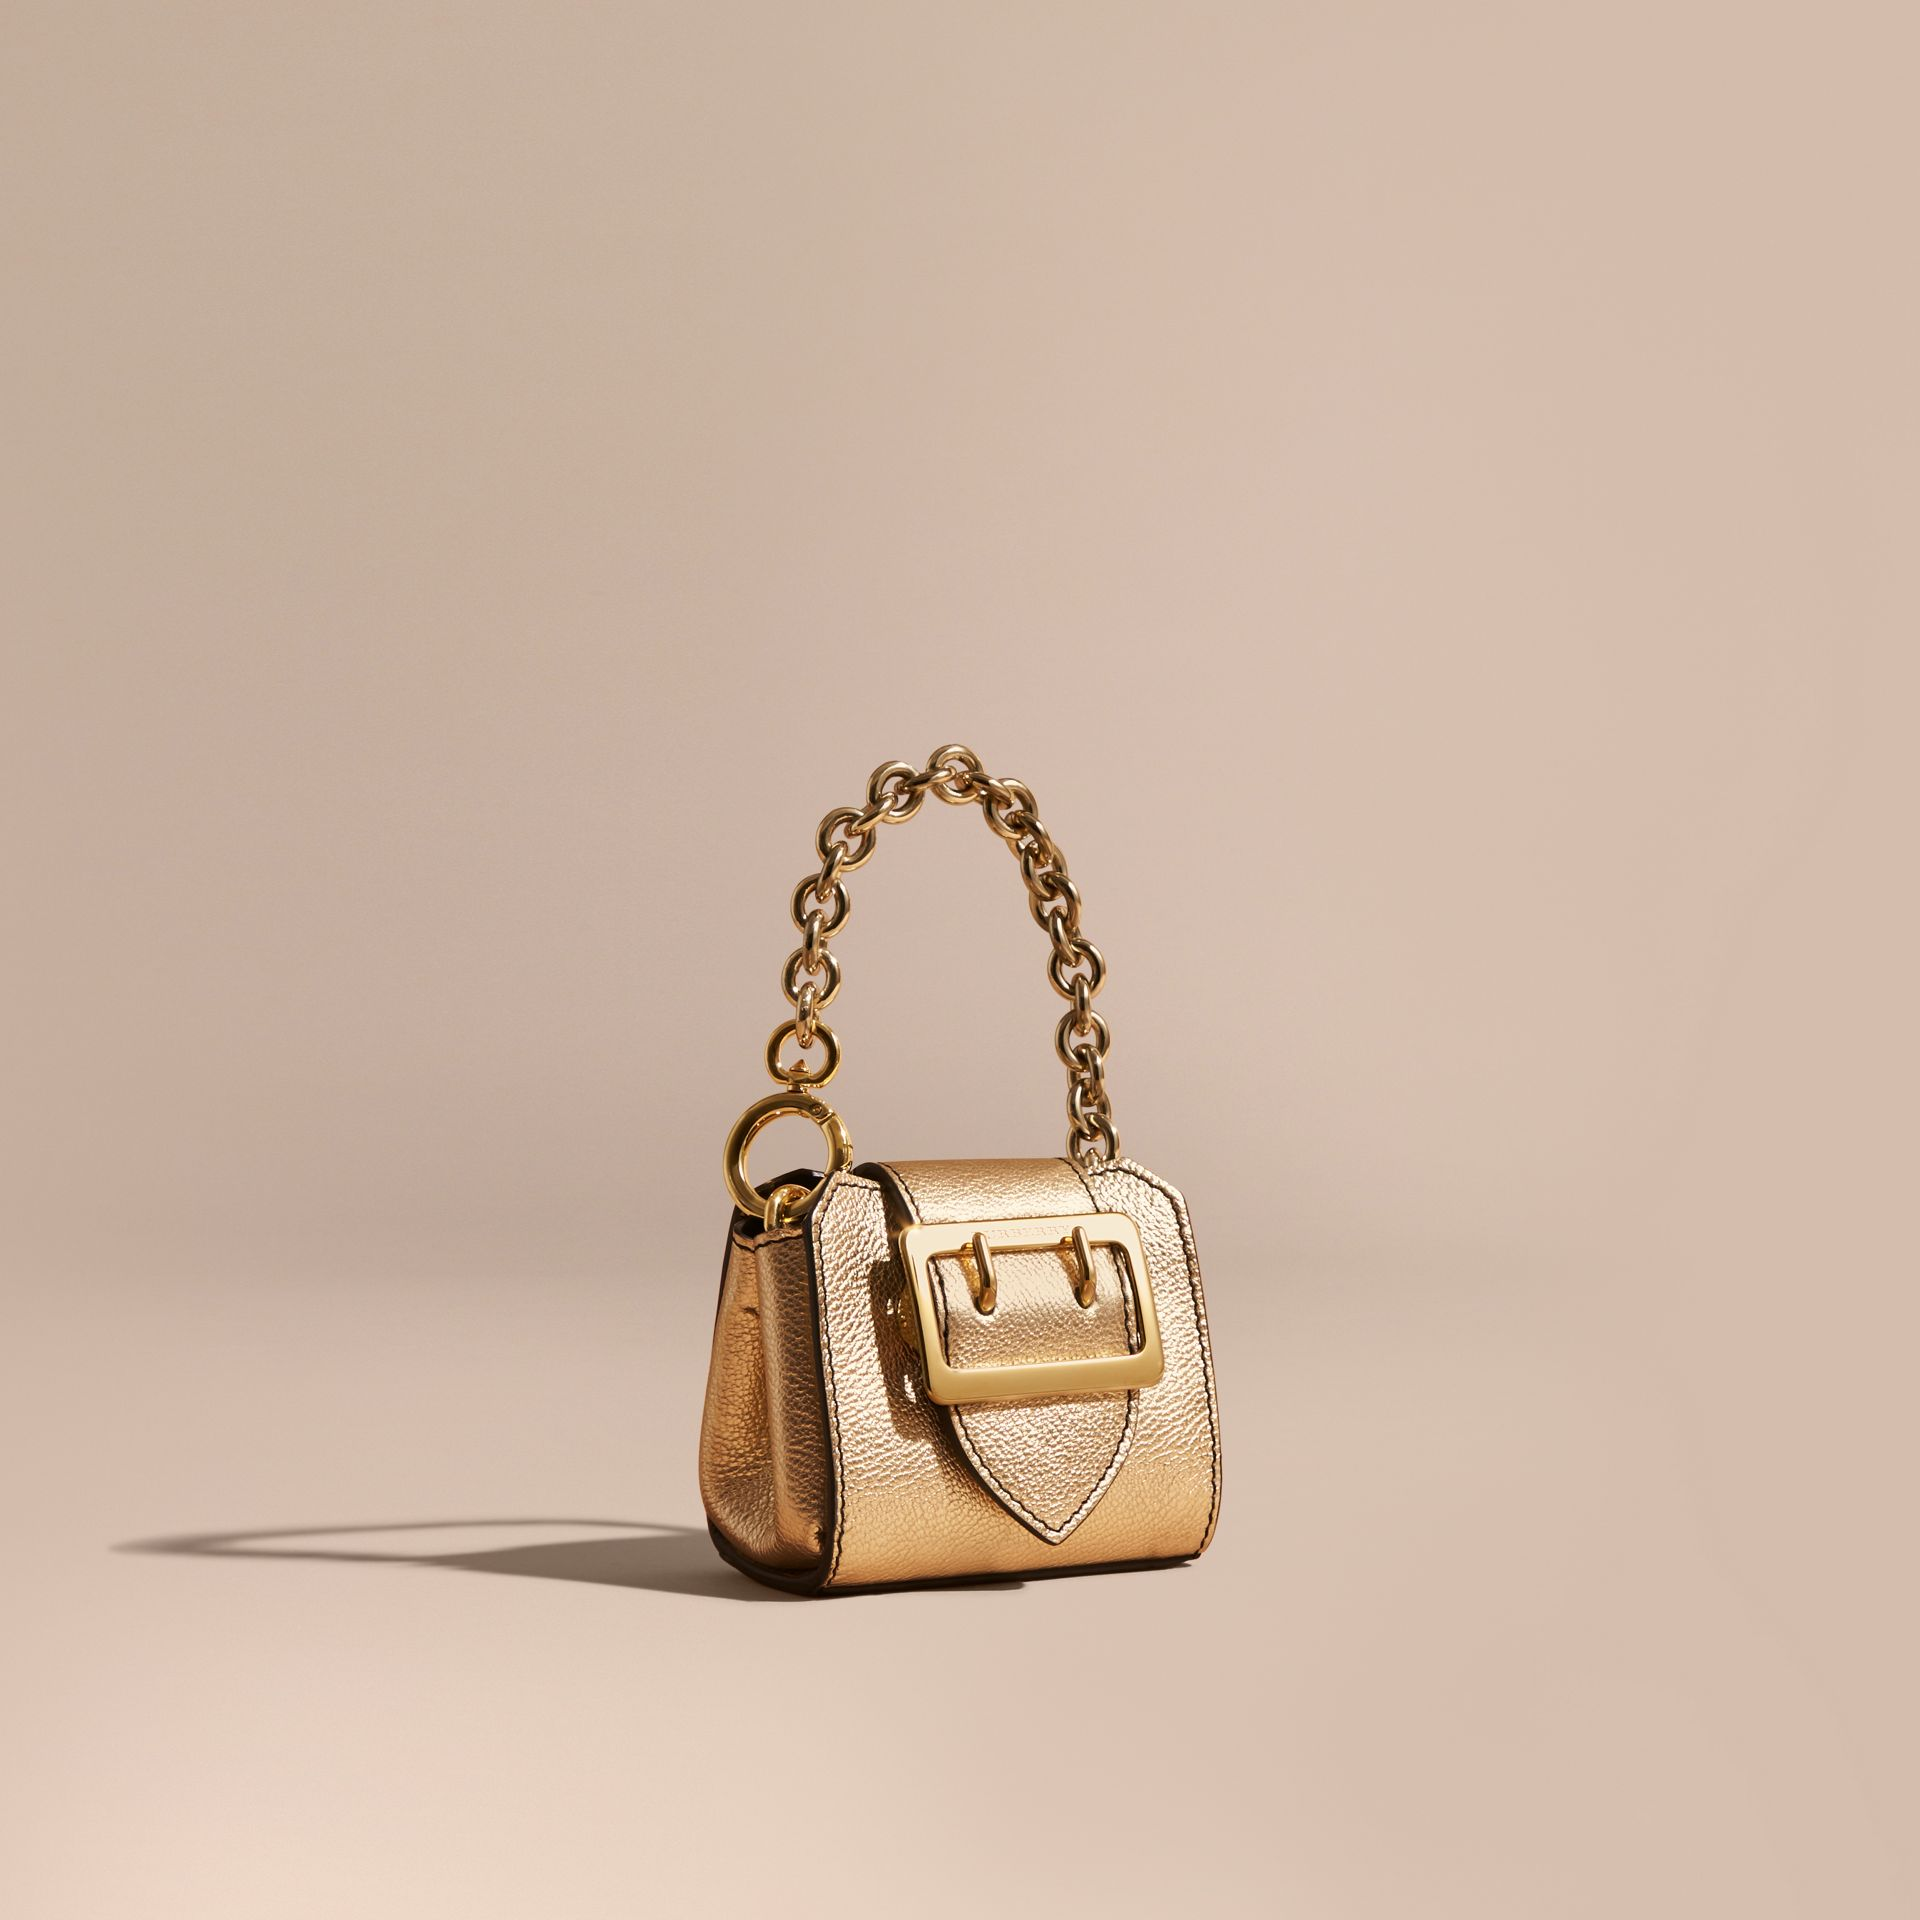 Gold The Mini Buckle Tote Charm in Metallic Leather Gold - gallery image 1